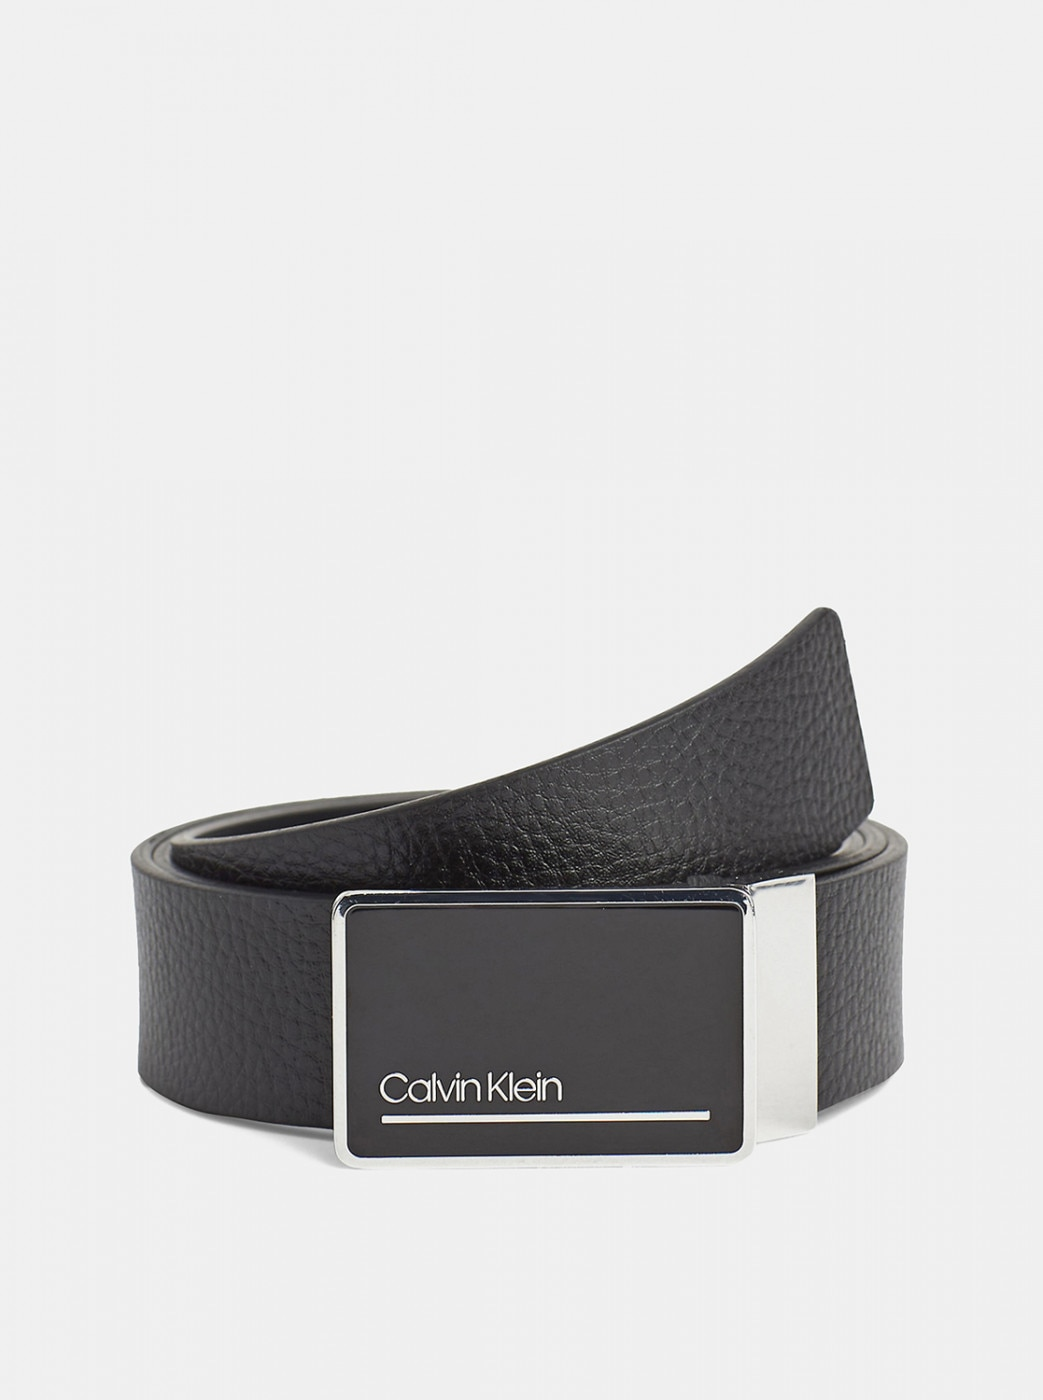 Set of two men's leather belts in black and dark blue calvin klein jeans